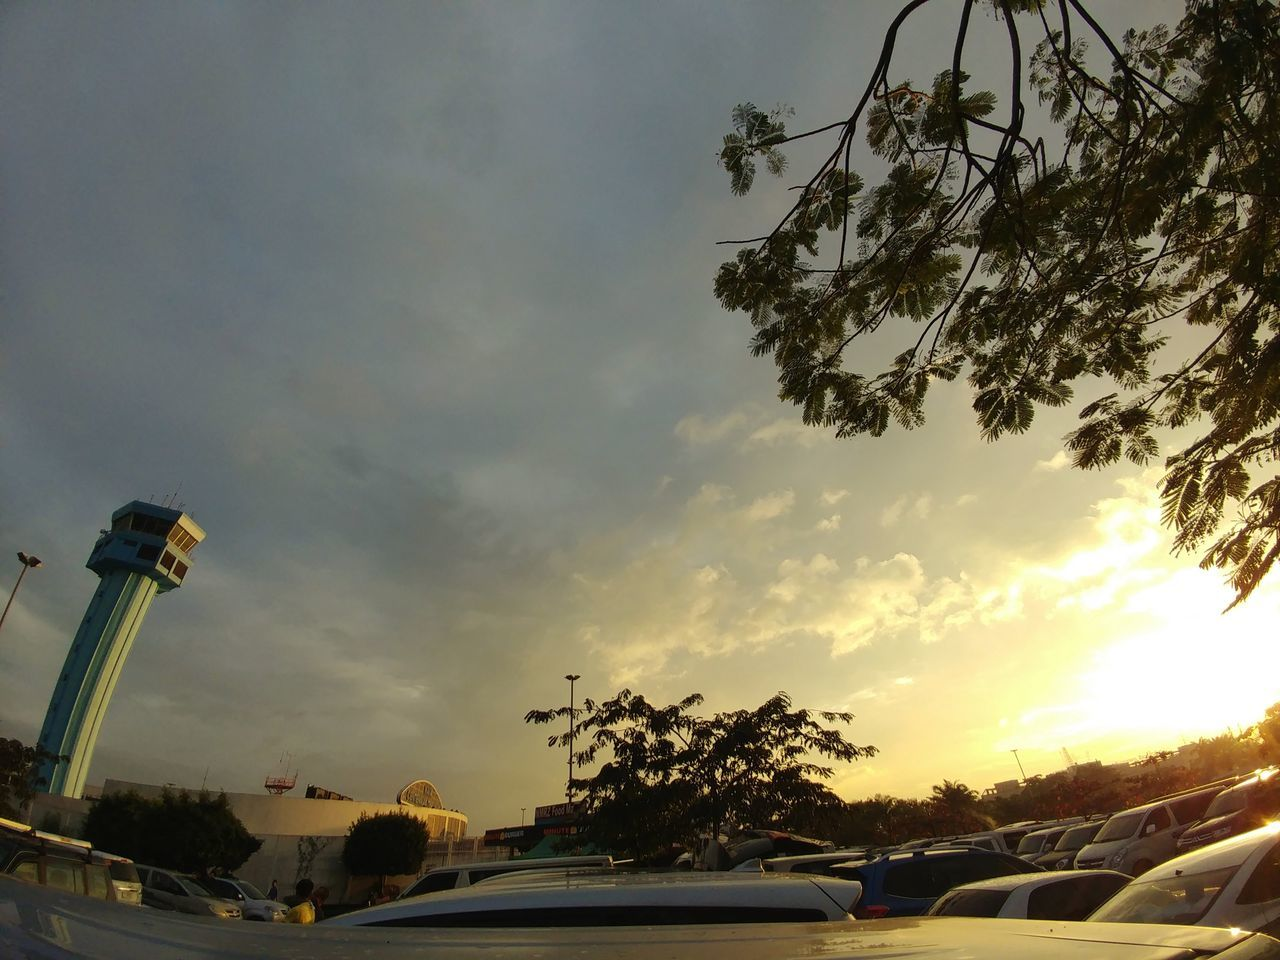 car, sky, cloud - sky, land vehicle, transportation, no people, low angle view, sunset, tree, outdoors, nature, day